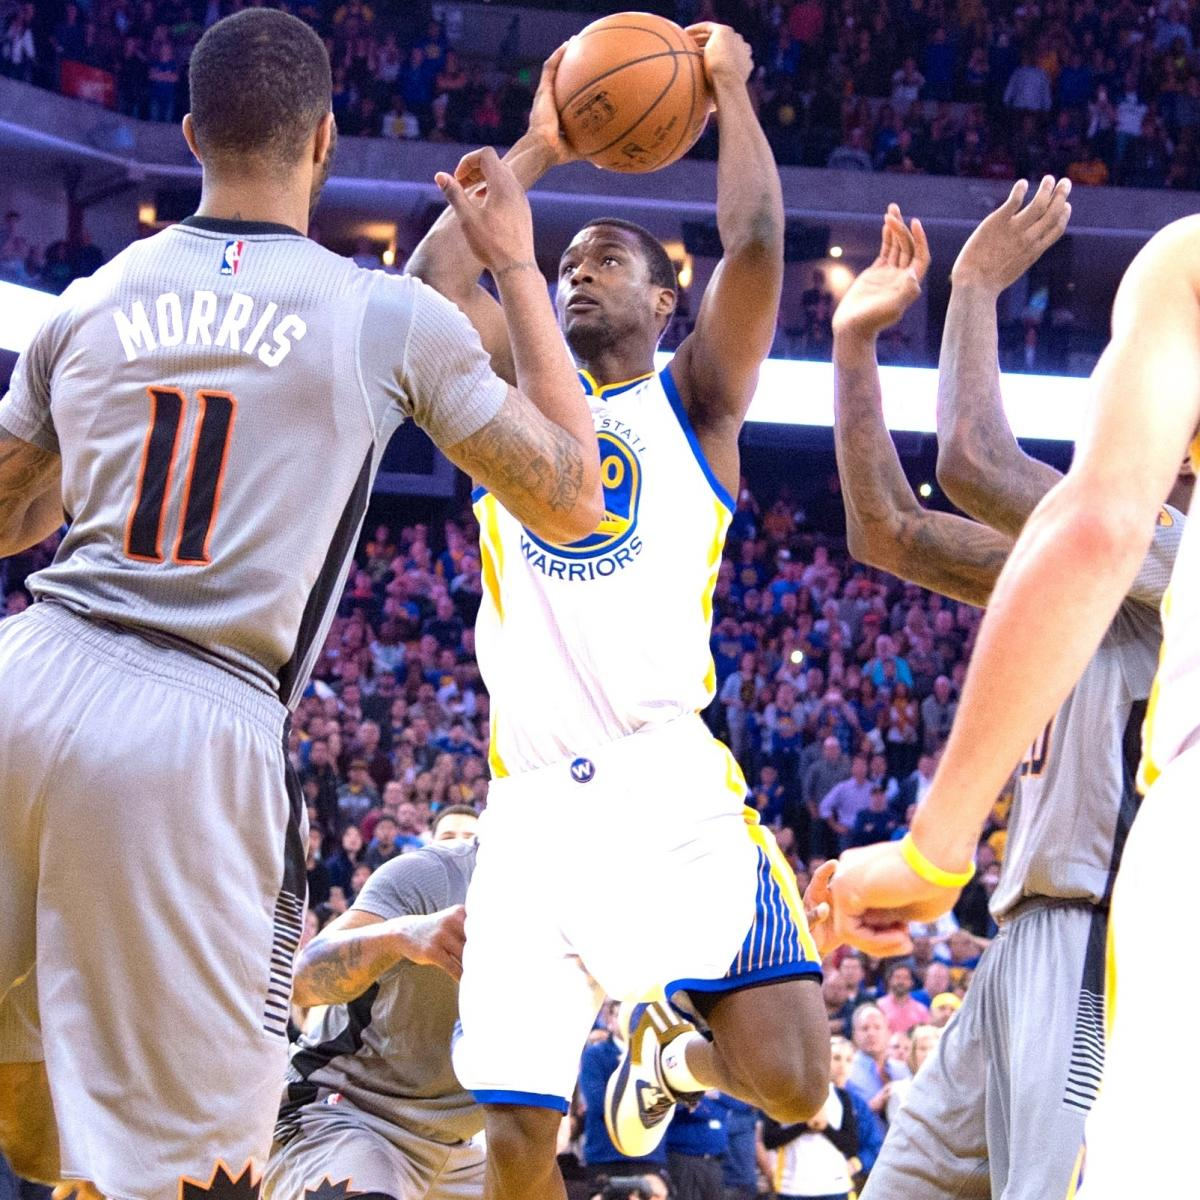 Warriors Come Out To Play Bleacher Report: Phoenix Suns Vs. Golden State Warriors: Live Score